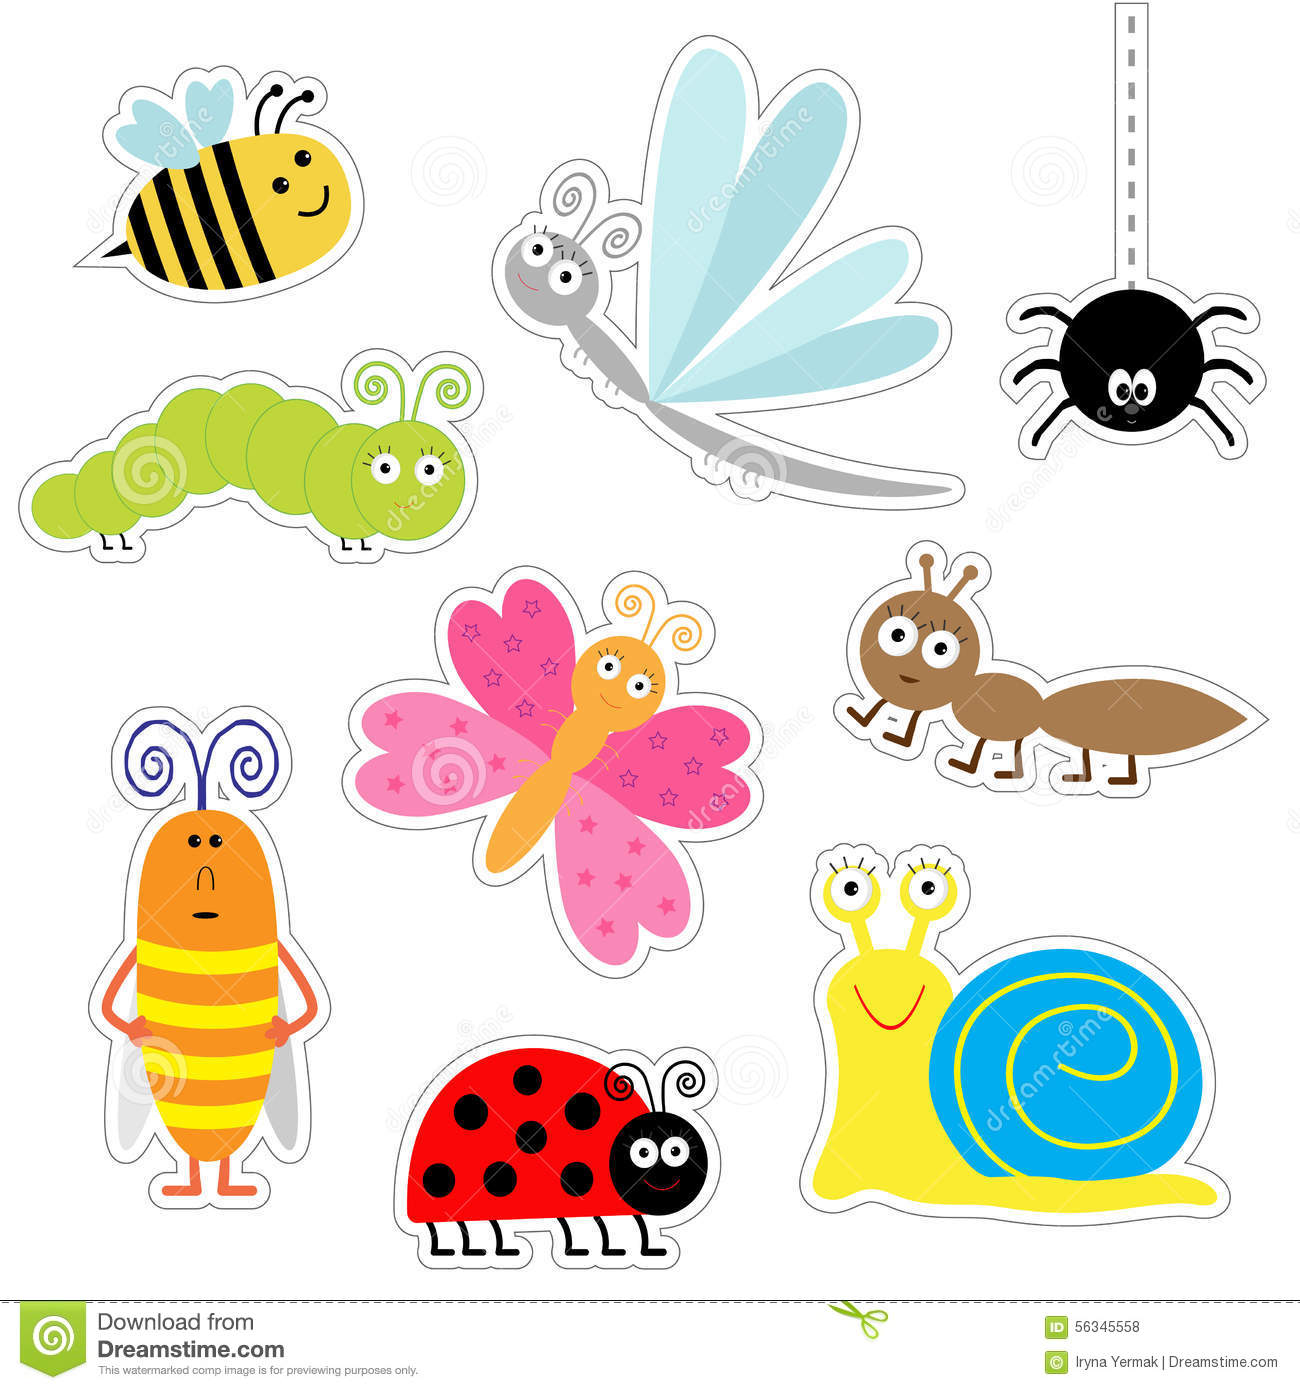 Cute Cartoon Insect Sticker Set. Ladybug, Dragonfly, Butterfly.